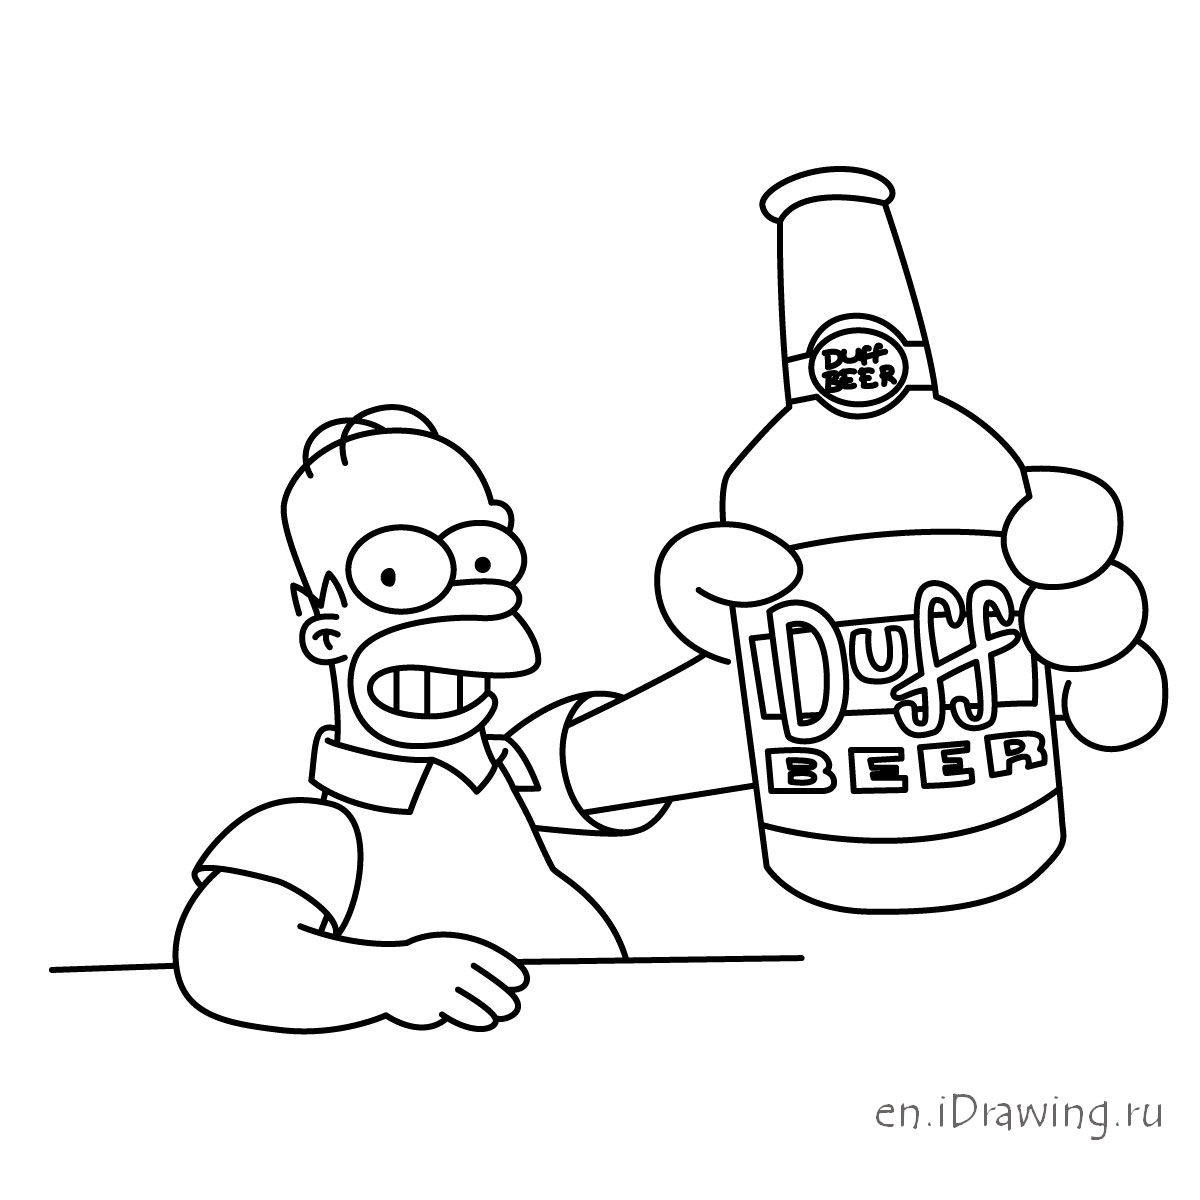 1200x1200 How To Draw Homer With Duff Beer Bottle